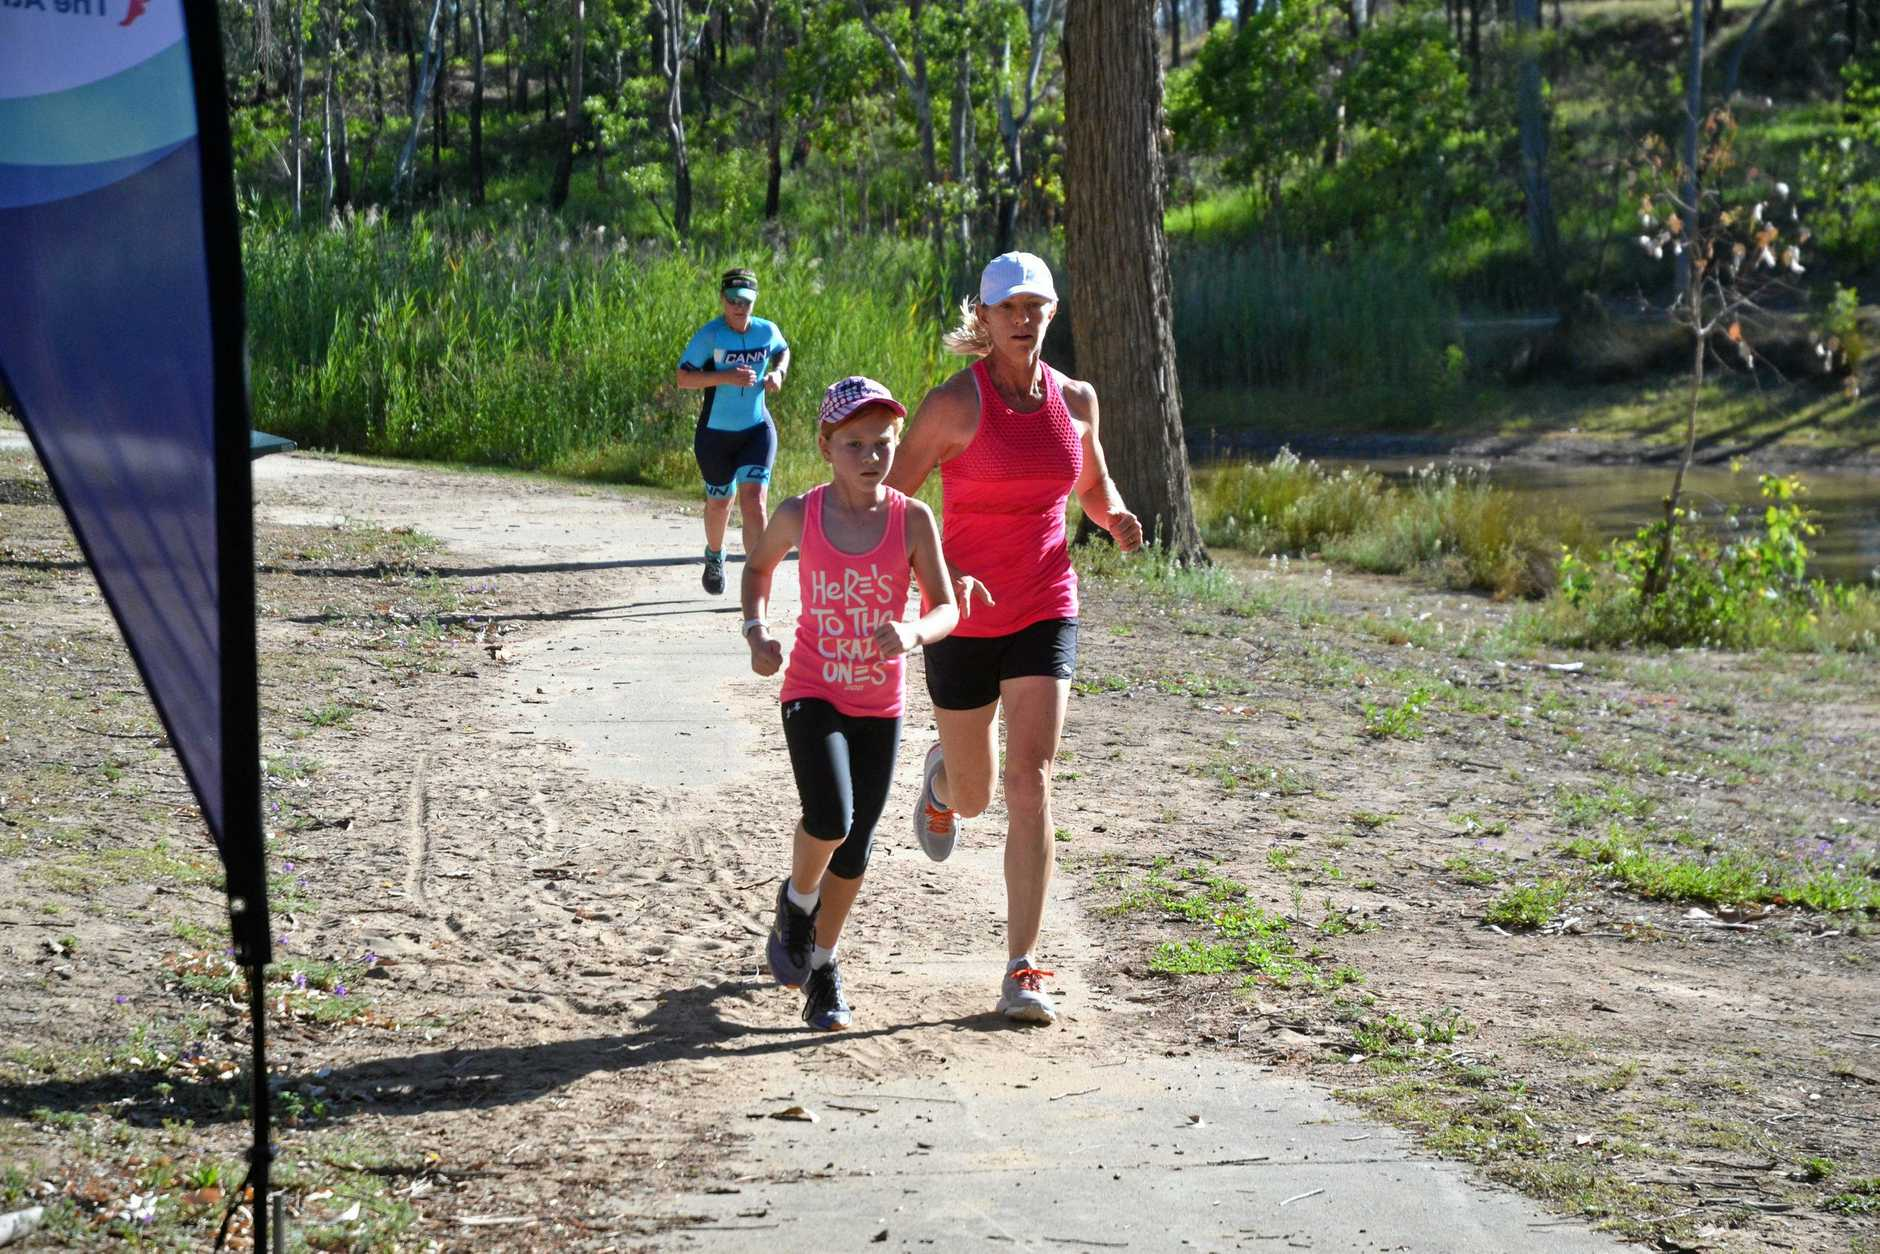 FUN AND FIT: Kealey and Janet Harland, and behind them Elaina Riebe at the Miles parkrun.